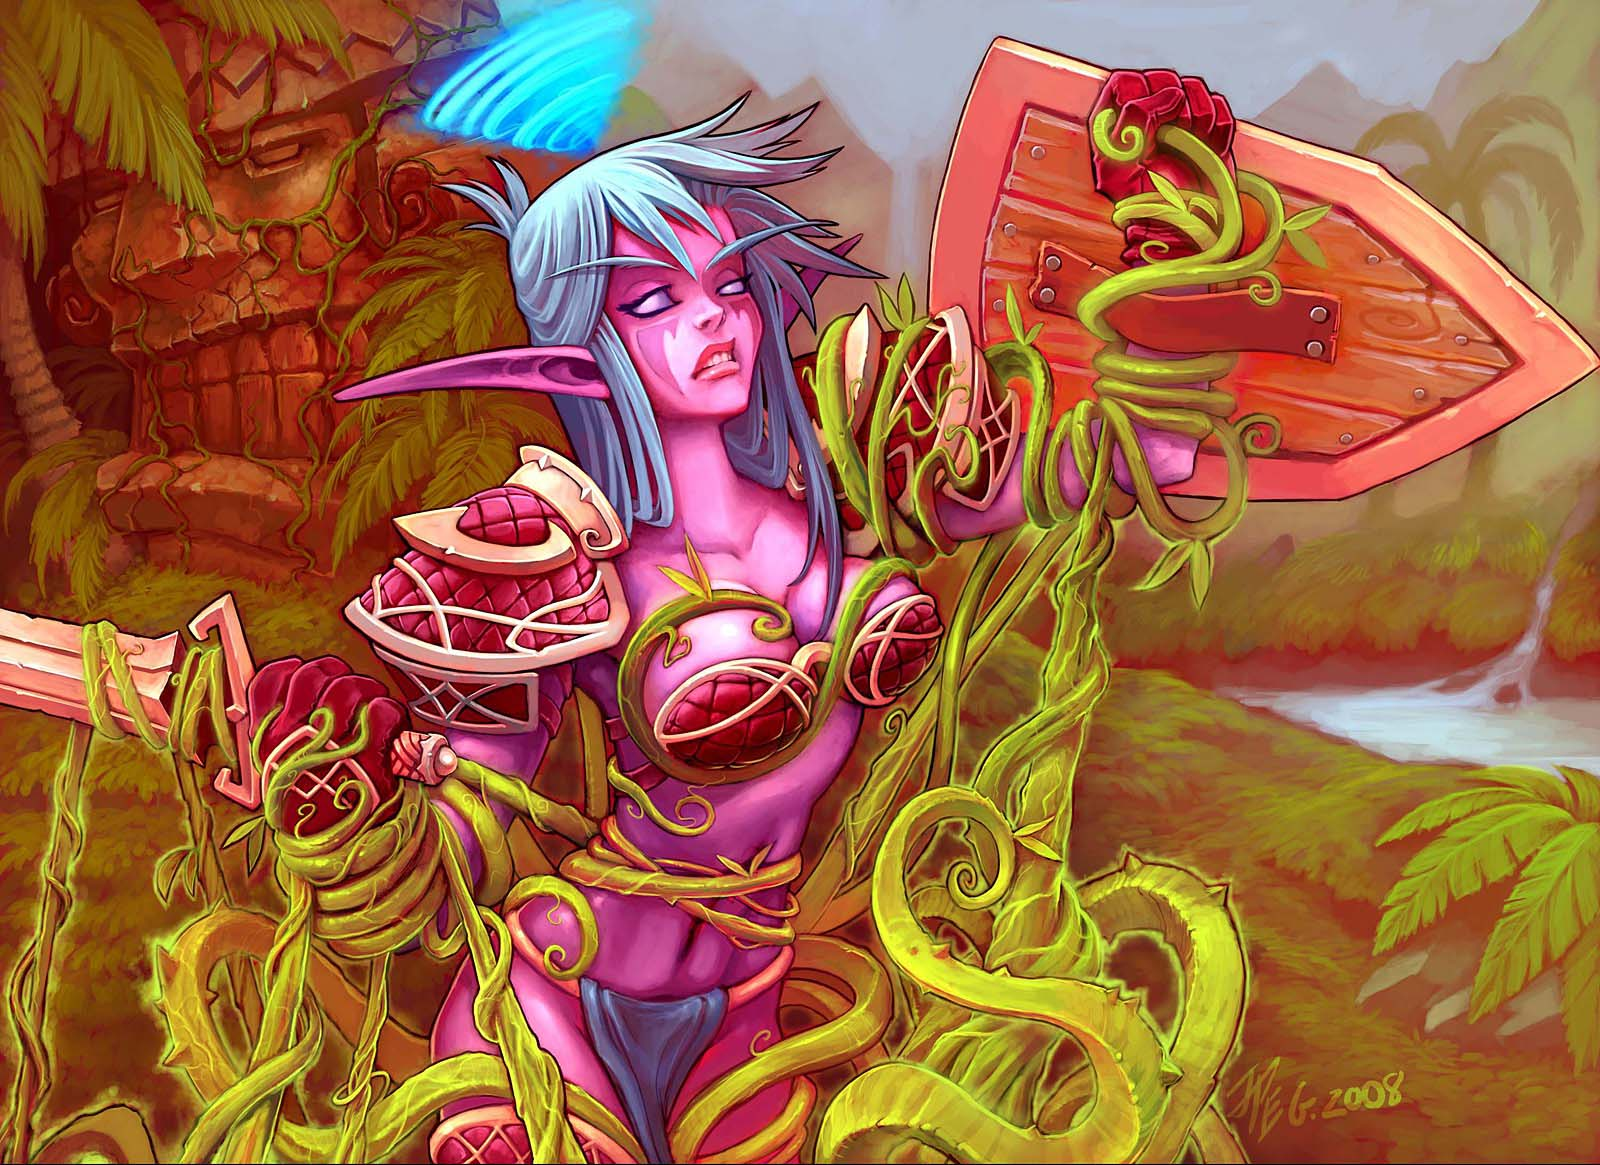 Trading card game art of night elf woman in skimpy armor fighting off vines.